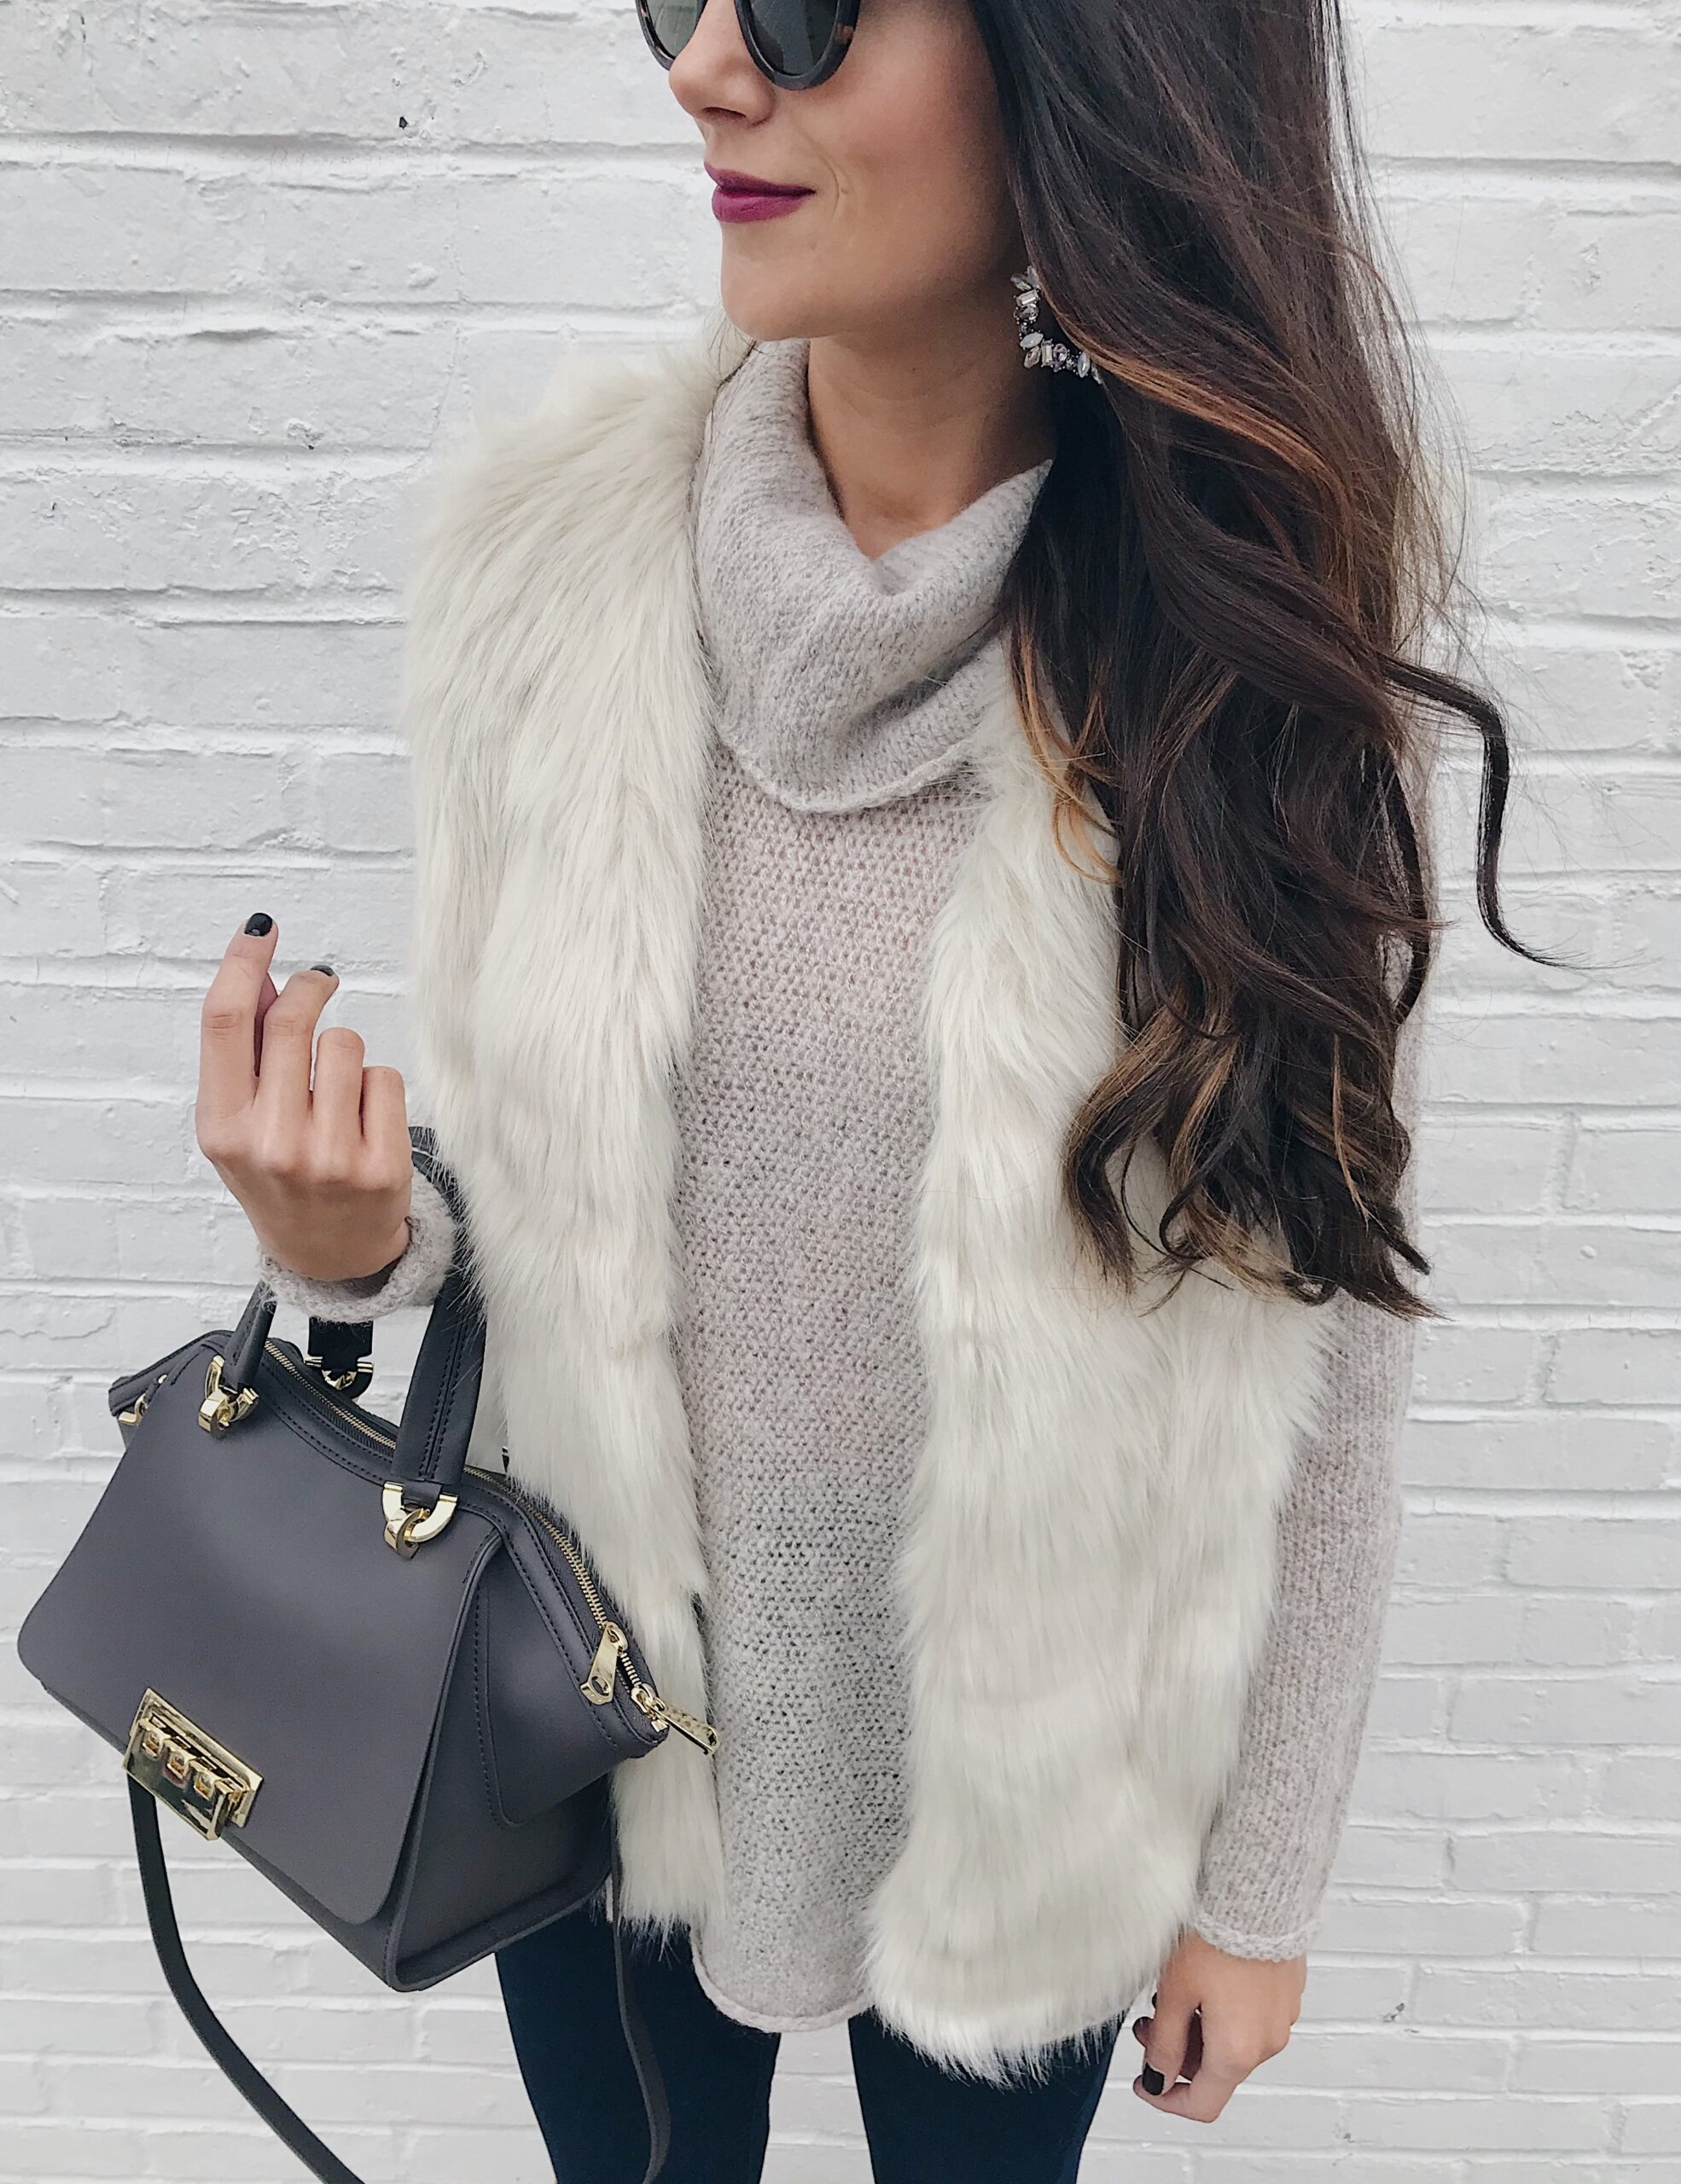 anna monteiro of blushing rose style blog wearing faux fur vest, and tunic sweater in 3 must have boot styles to own this season